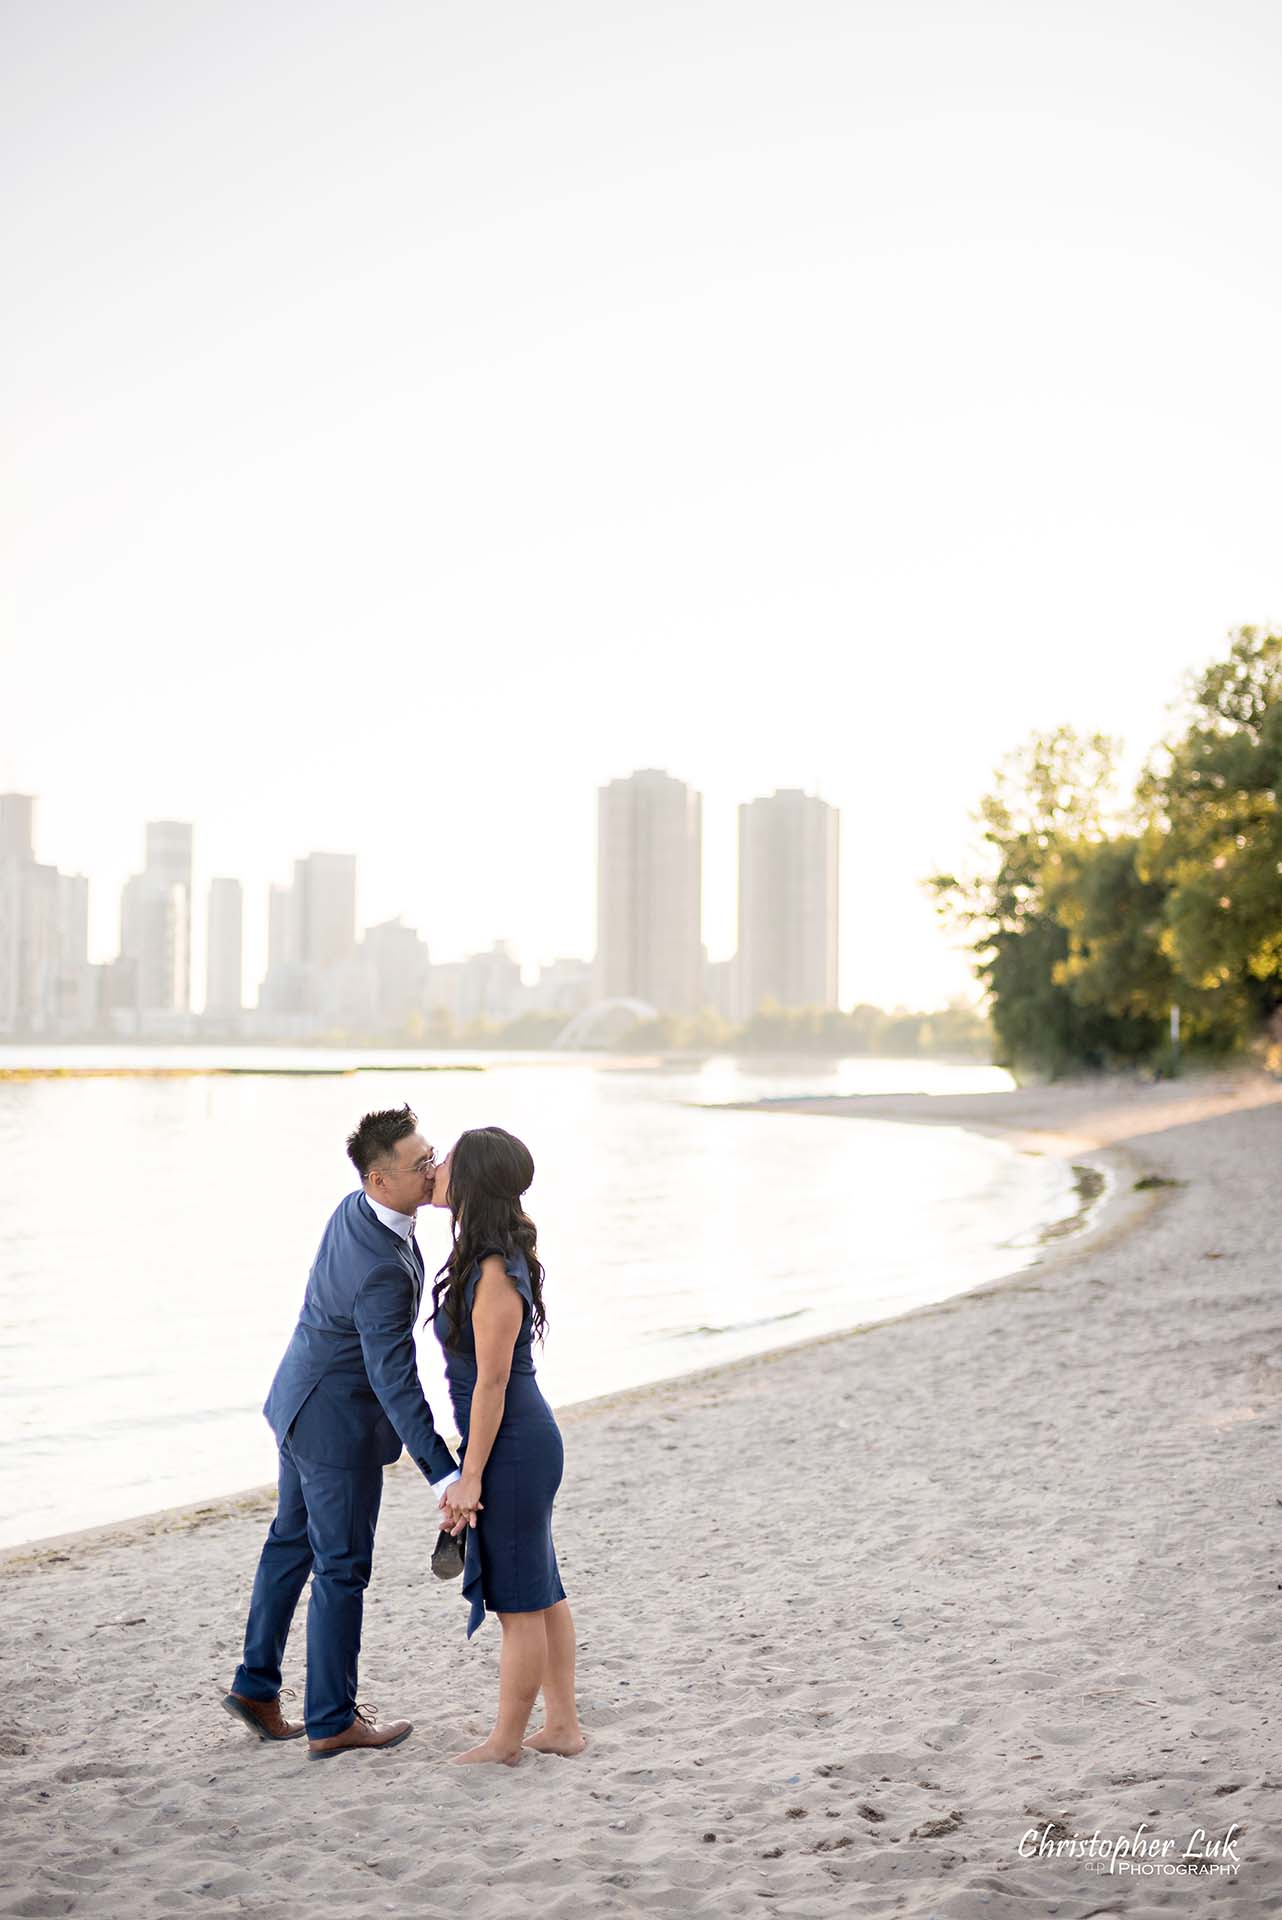 Christopher Luk Toronto Wedding Photographer - Engagement Photography - Sunnyside Pavilion Park Beach Boardwalk Toronto - Bride and Groom Natural Candid Photojournalistic Humber Bay Archway Arch Bridge Skyline Walking Kiss